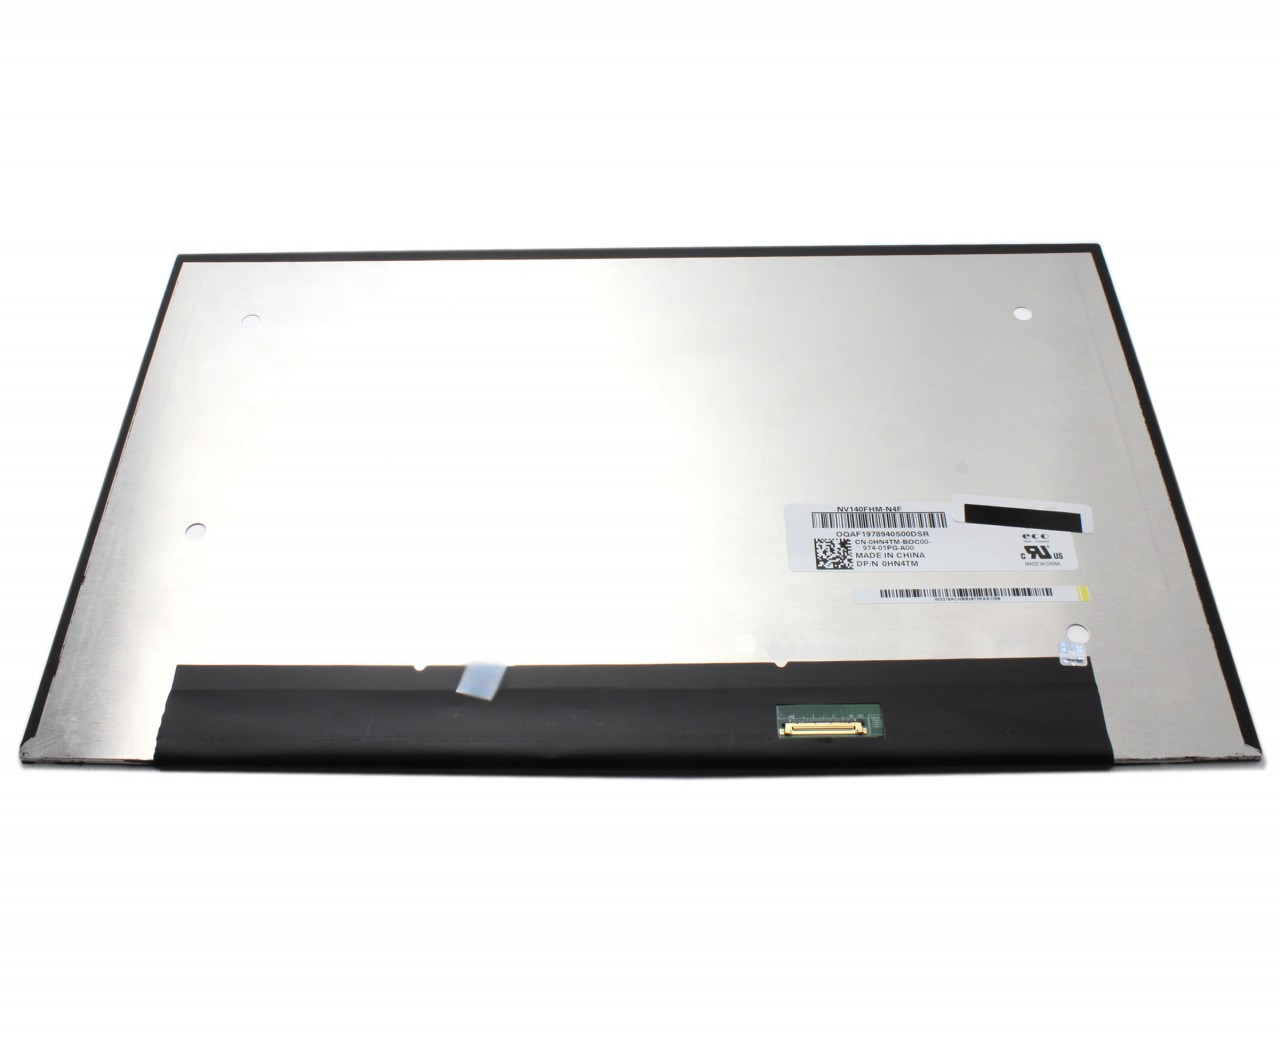 Display laptop Dell Latitude 5400 Ecran 14.0 1920x1080 30 pinni eDP imagine powerlaptop.ro 2021